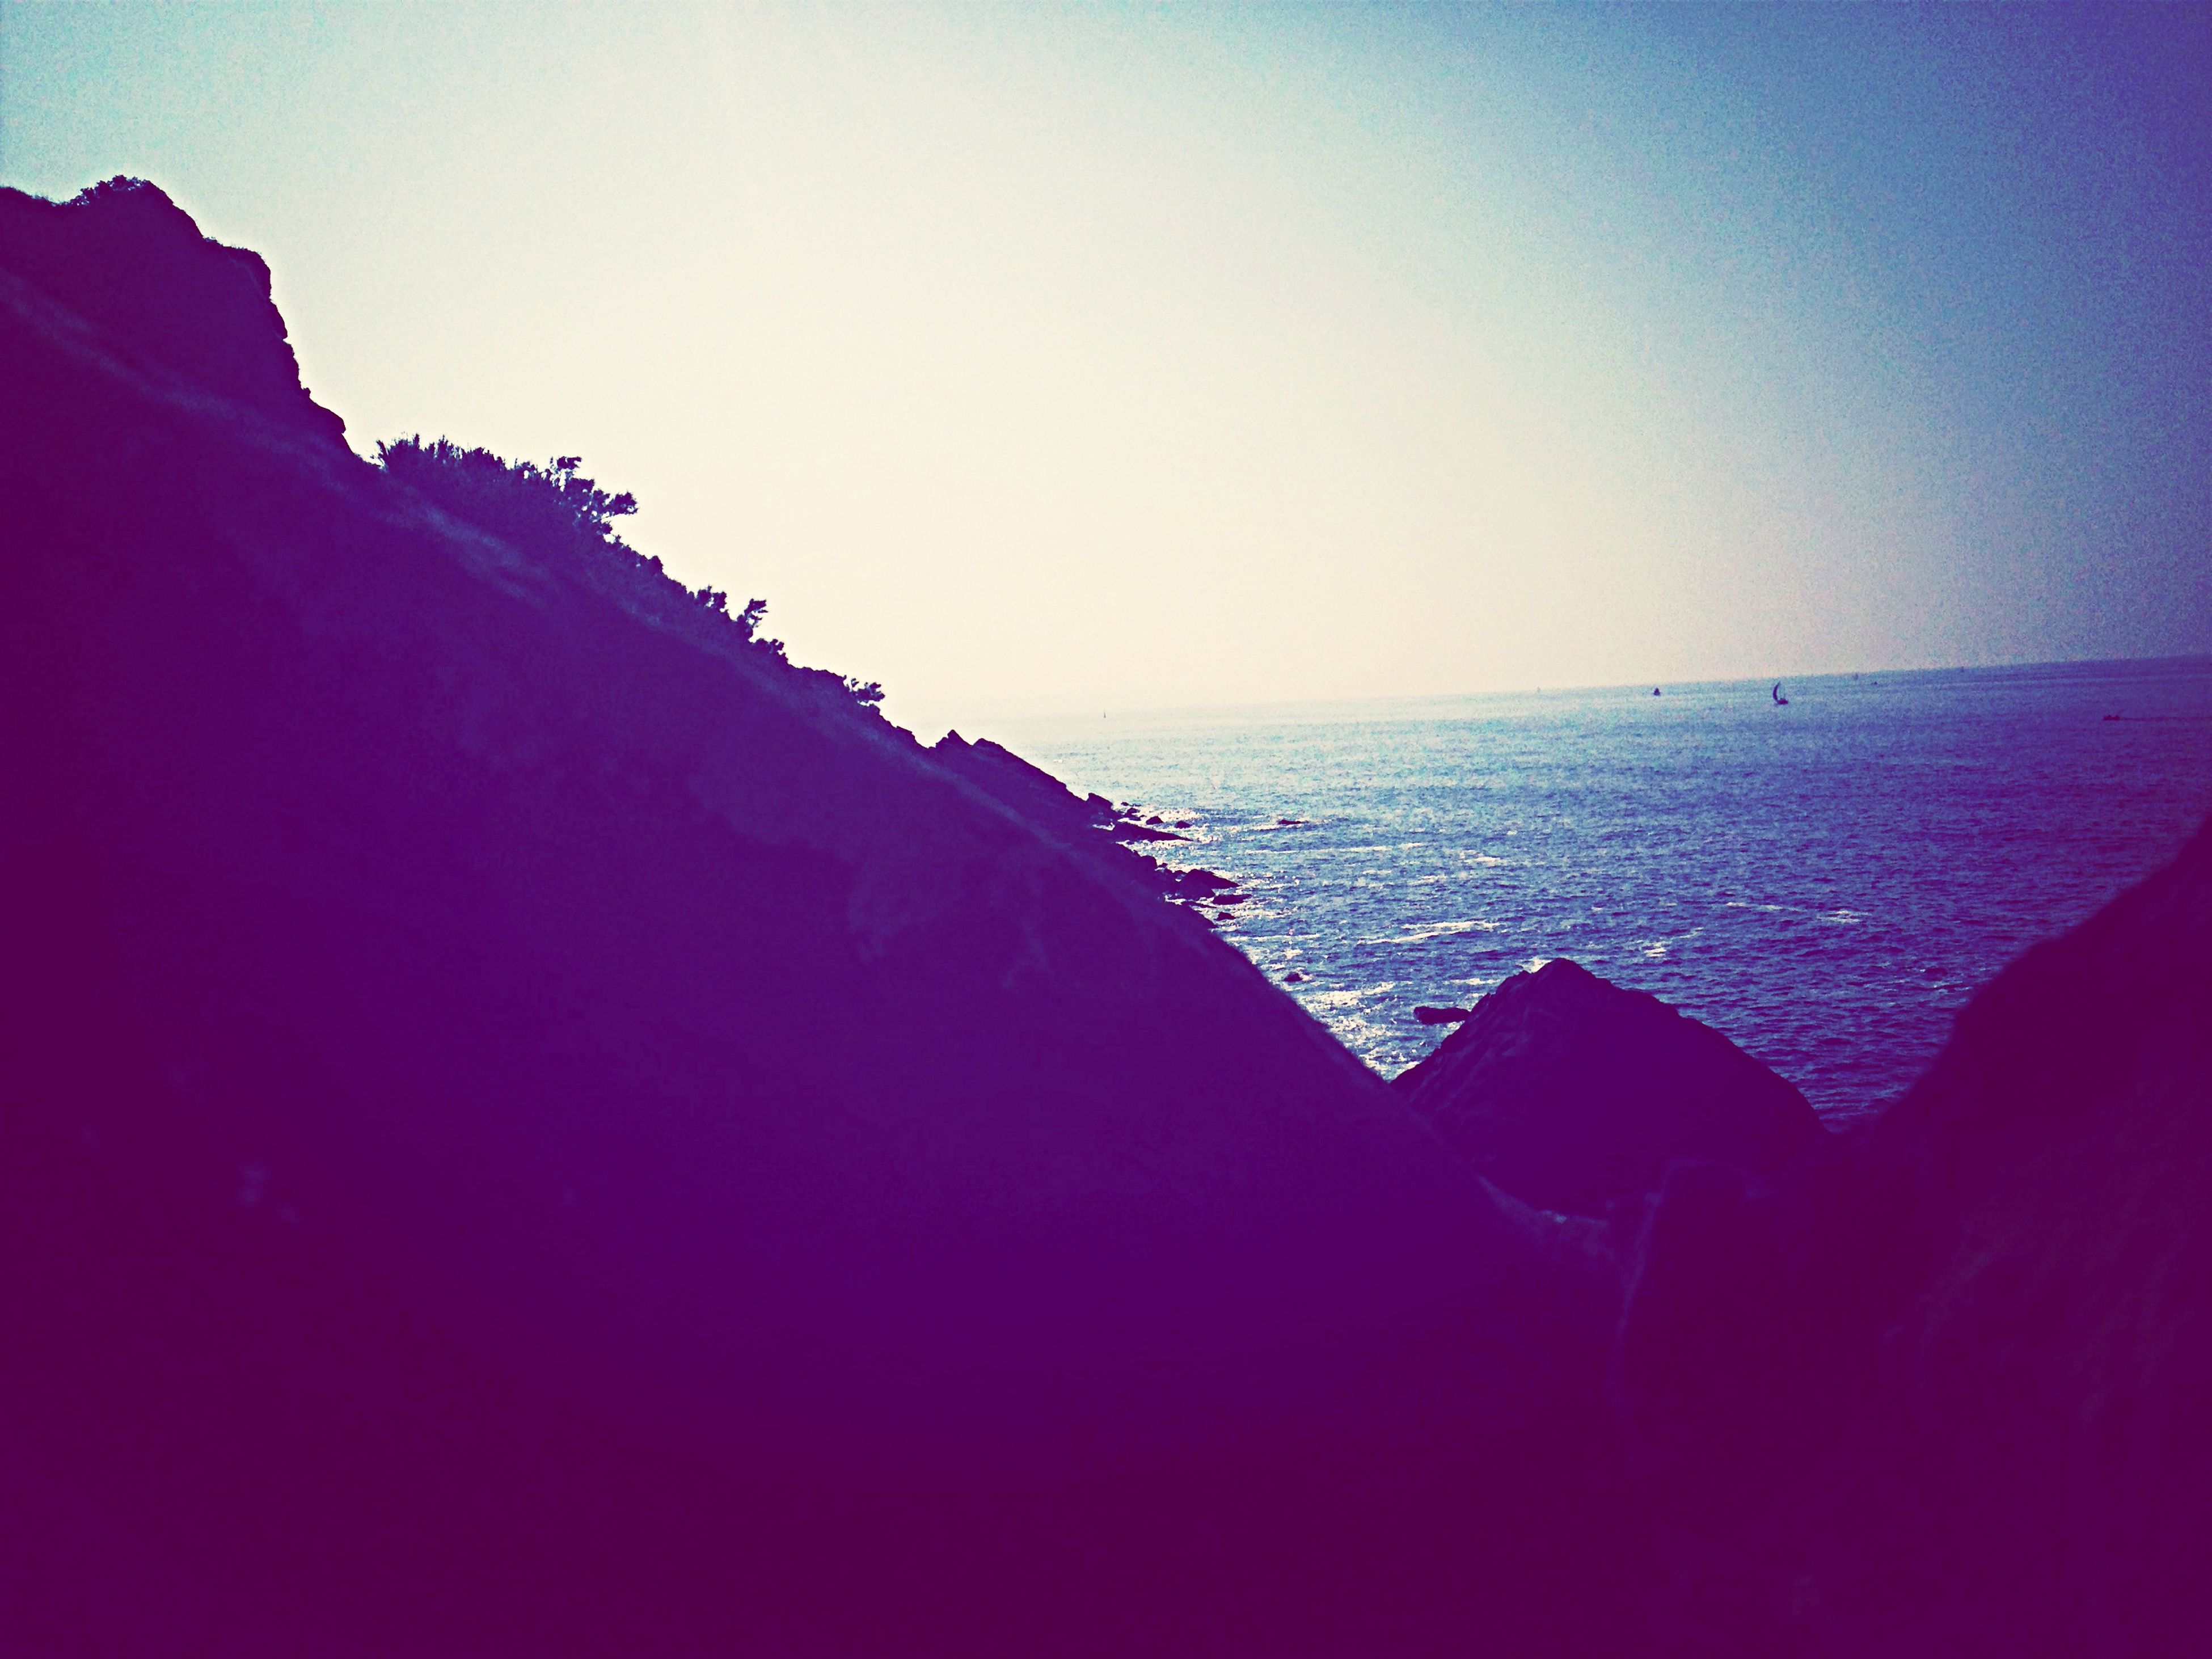 sea, horizon over water, clear sky, copy space, water, scenics, tranquil scene, beauty in nature, tranquility, nature, beach, idyllic, blue, remote, shore, non-urban scene, seascape, outdoors, calm, rock formation